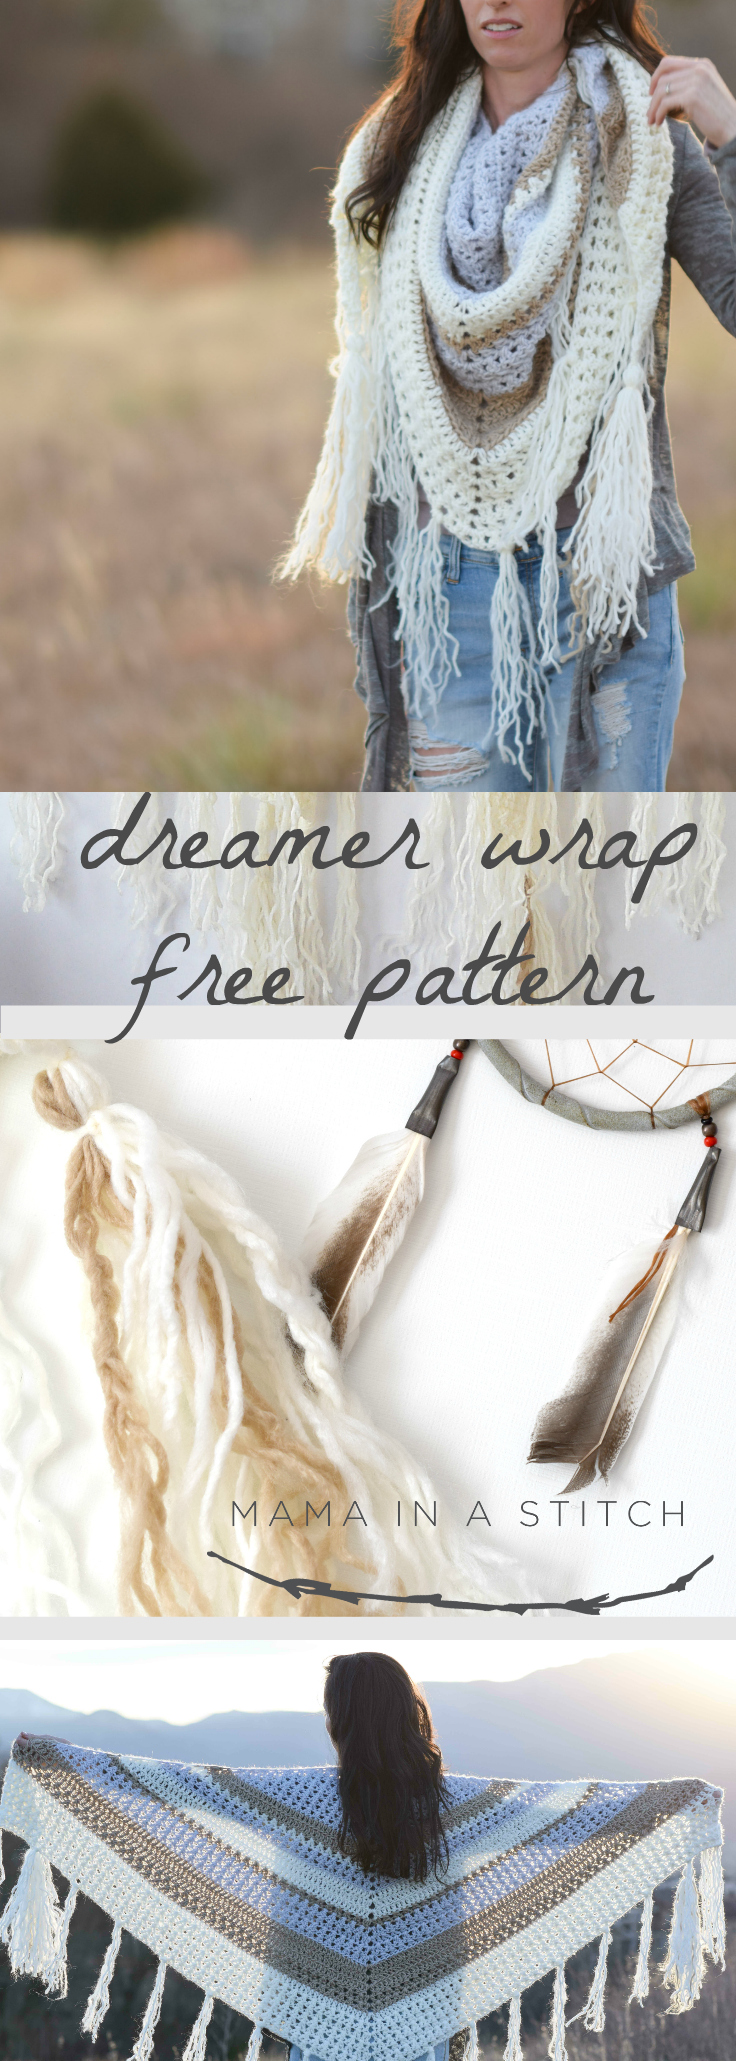 The Dreamer Crocheted Triangle Wrap Pattern – Mama In A Stitch